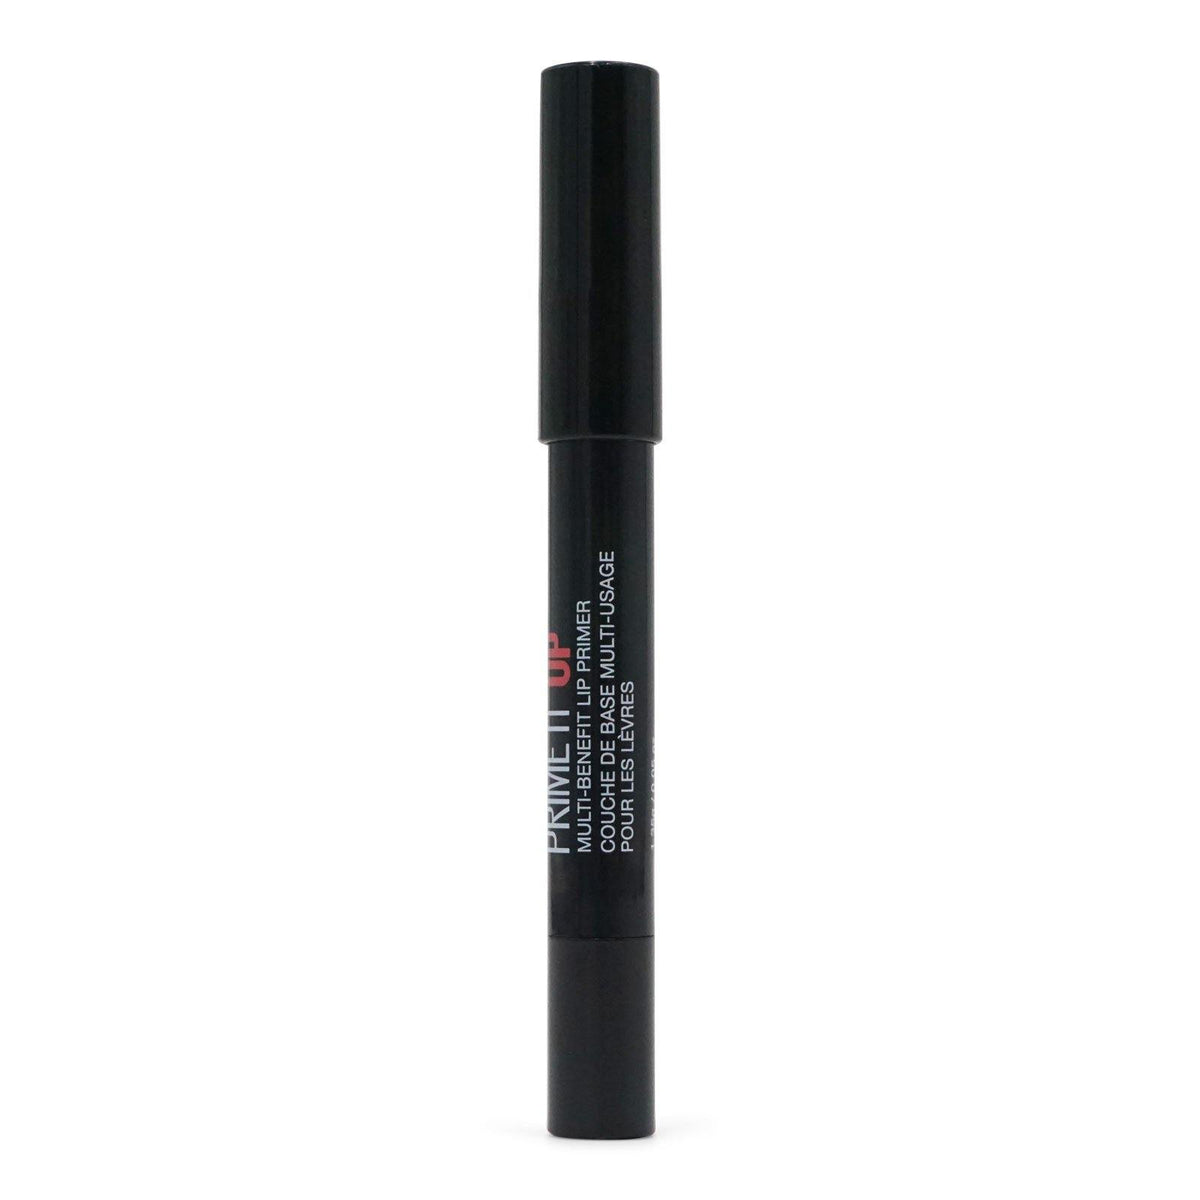 Maybelline Lip Studio Prime It Up Lip Primer - (0.05oz/1.41g)  (24/cs)